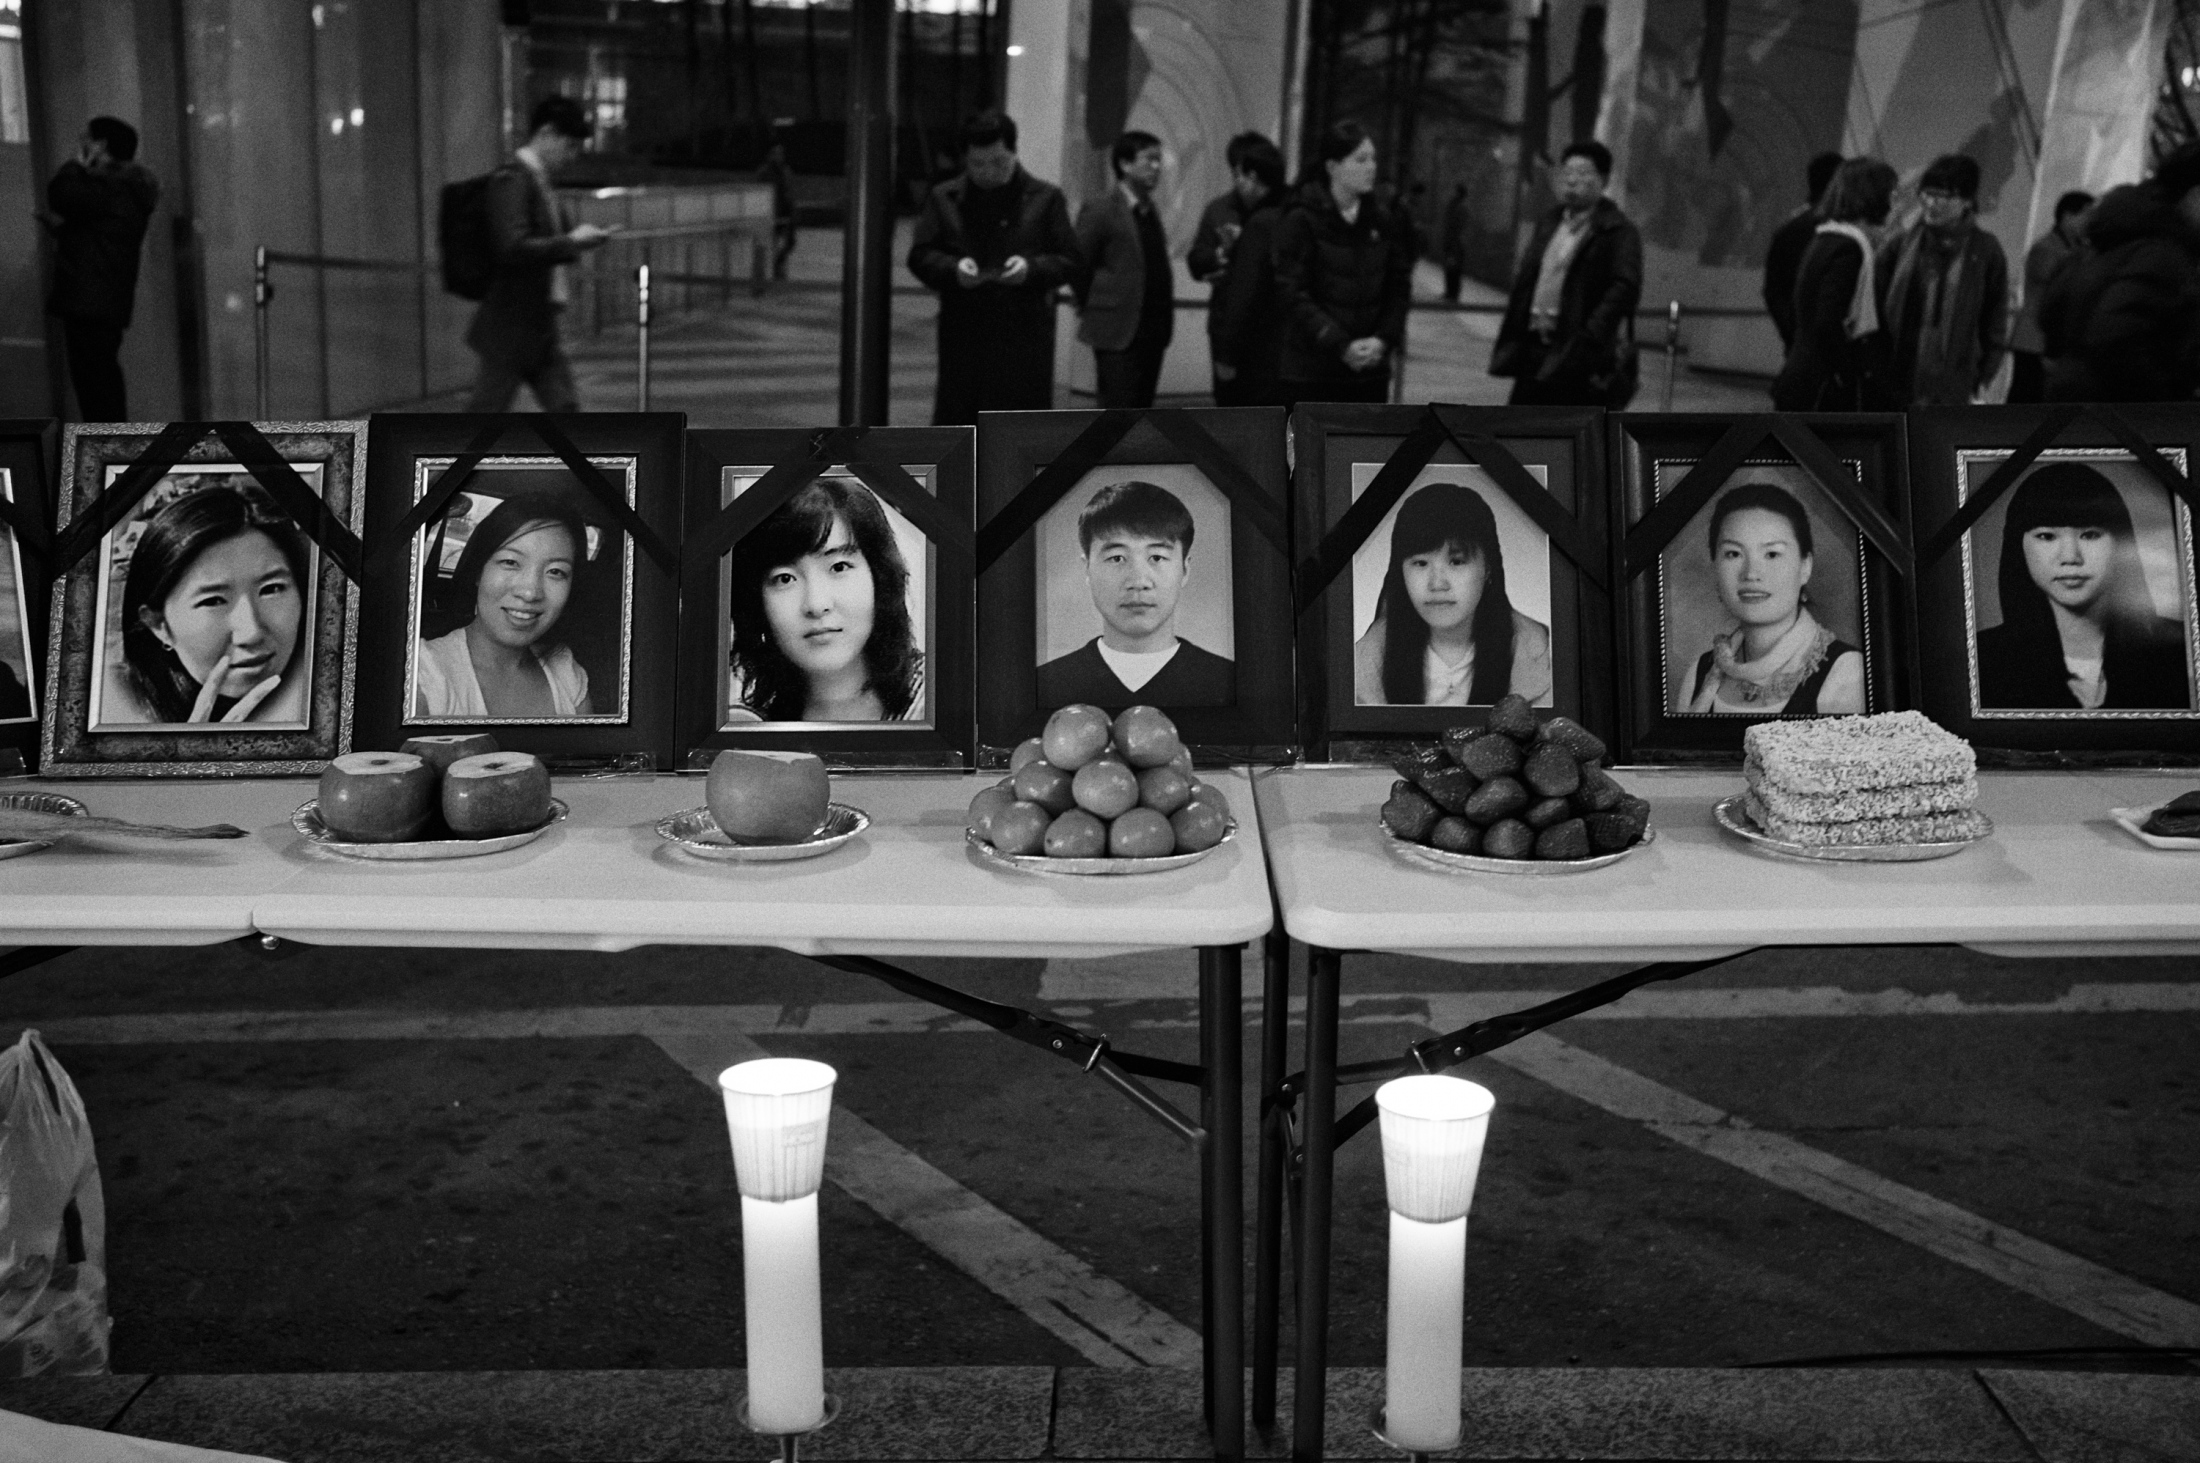 "Portraits of the deceased factory workers of Samsung Electronics and foods are set on the table for the memorial of the victims in front of Samsung Town Headquarters in Seoul, South Korea on Mar. 6, 2013. The victims' families and ""Banolim,"" an activist group which supports and helps the victims hold the memorial ritual for the victims on every March 6th since 2008. The victims who worked in Samsung Electronics semiconductor chip and display factories died of critical disease like leukemia, cancer and brain tumor due to toxic chemicals they had handled during manufacturing processes. According to Banolim, 112 former semiconductor chip and display factory workers have died among 306 reported cases."